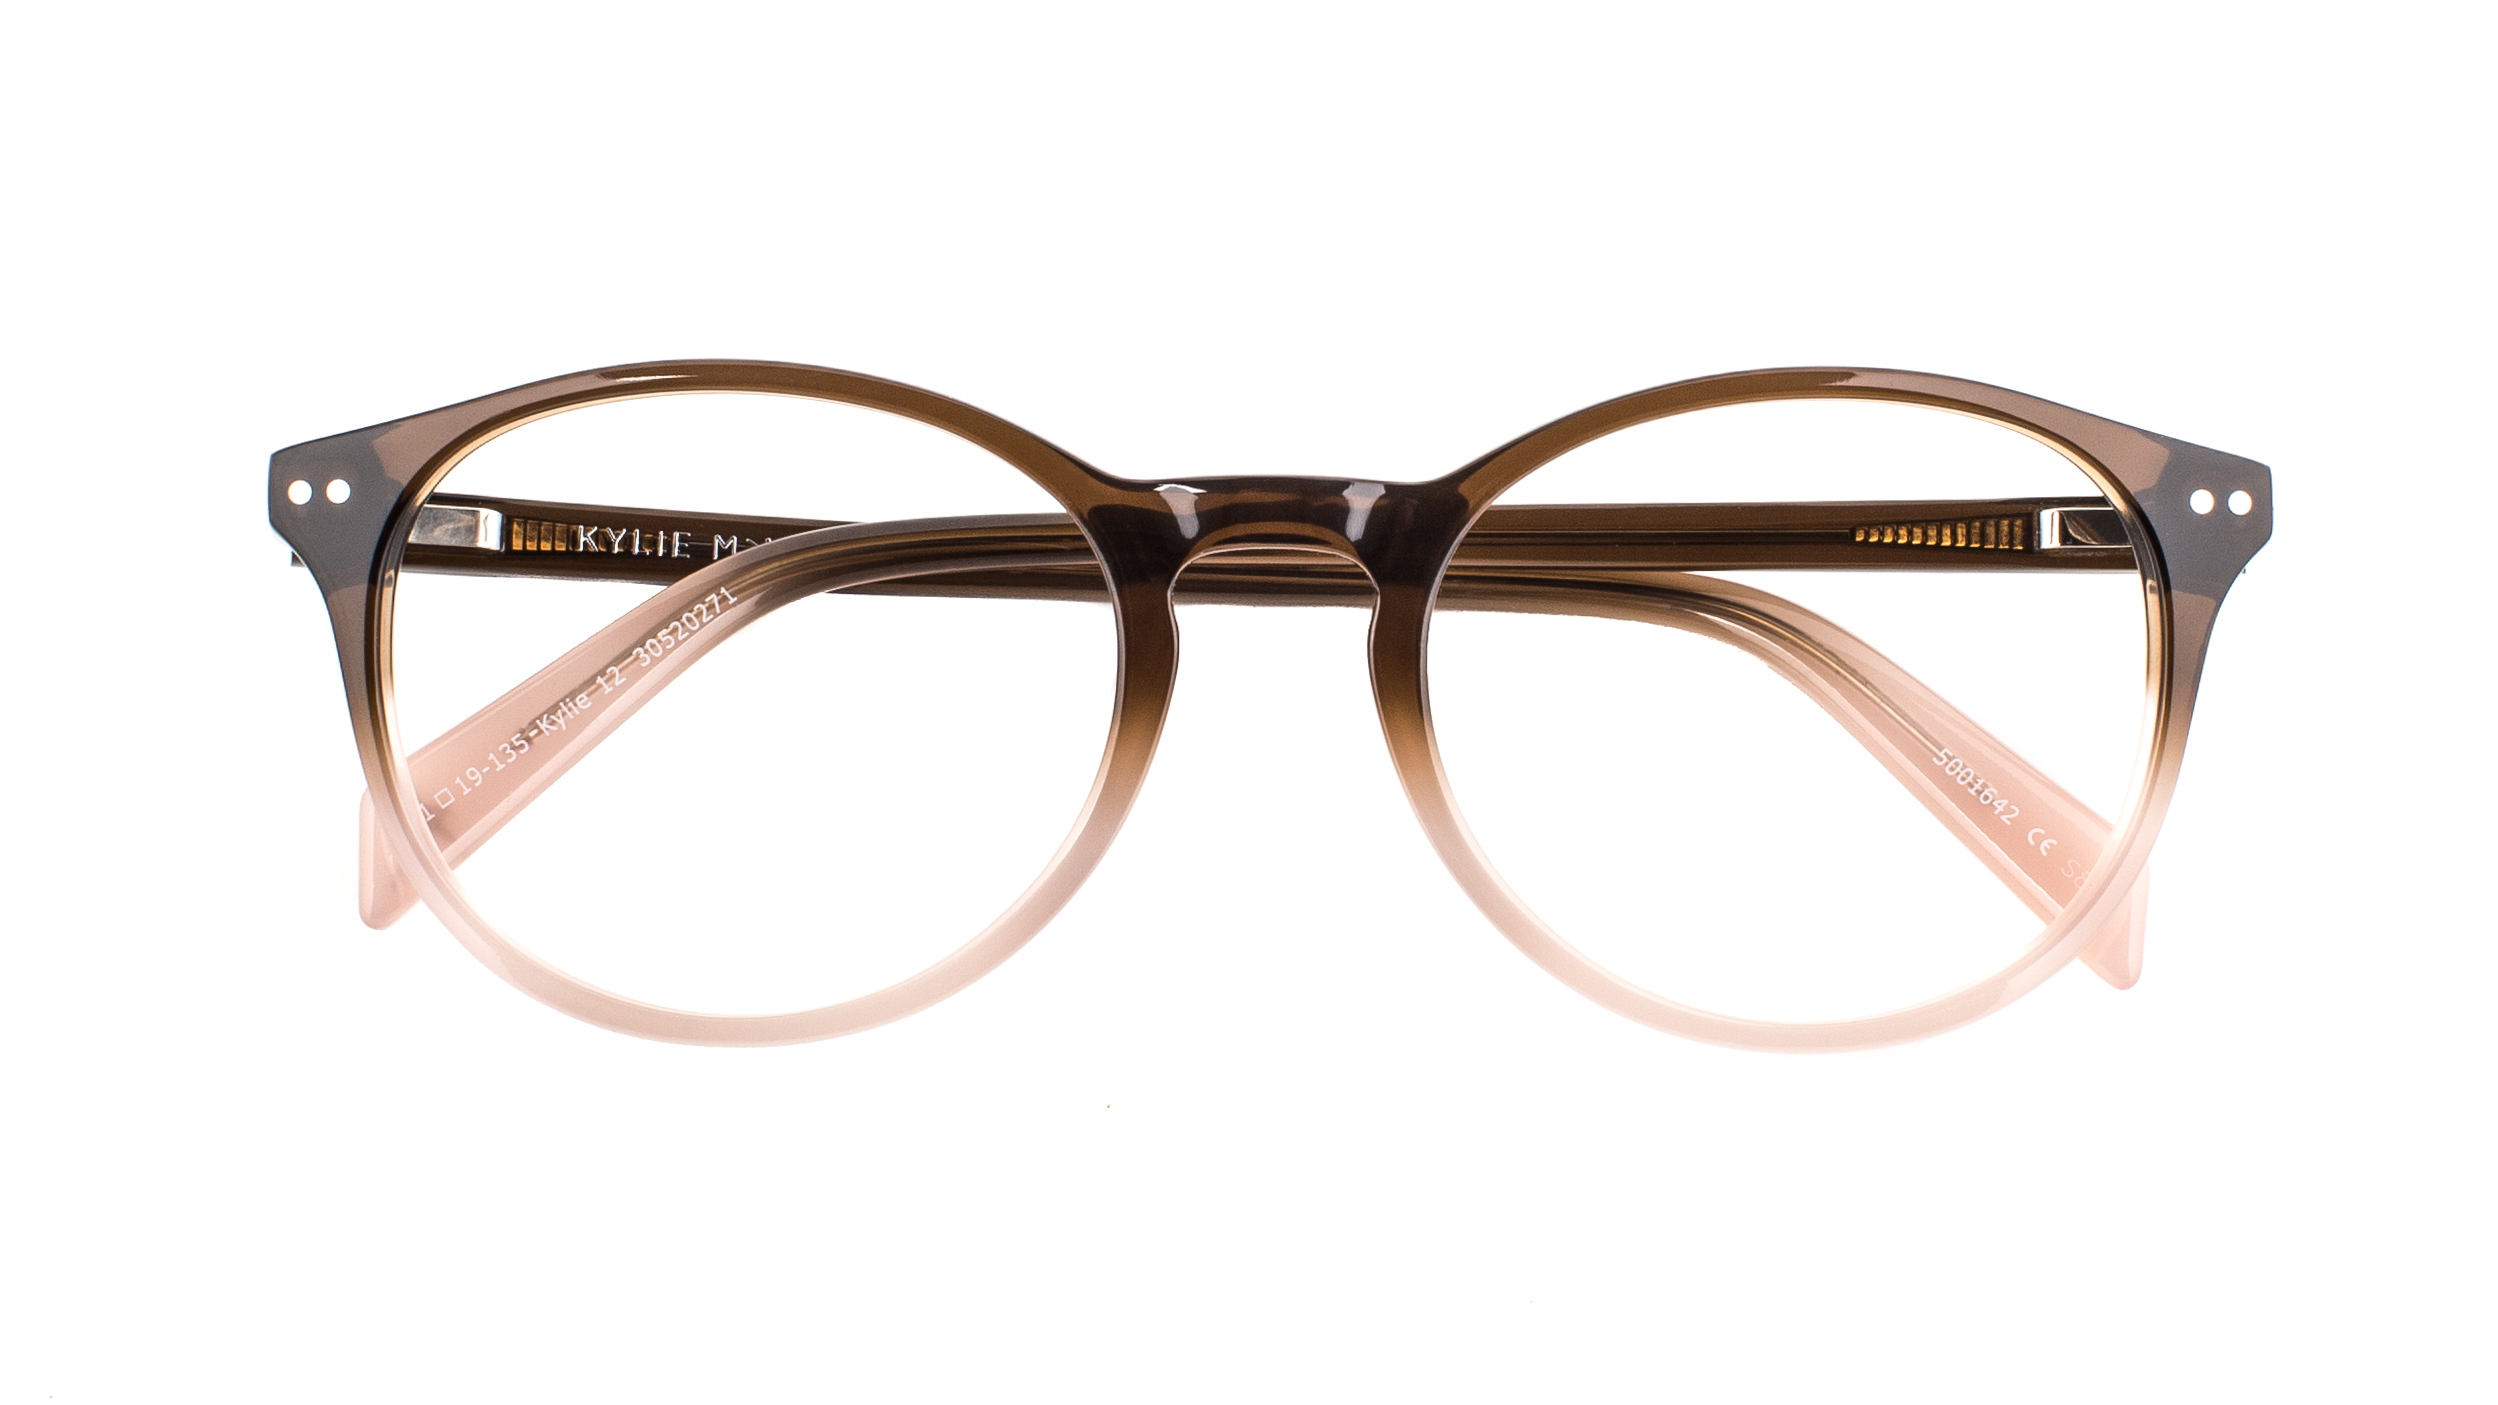 Kylie Minogue Eyewear_Kylie 12_SKU 30520271_RRP 2 pairs from $369